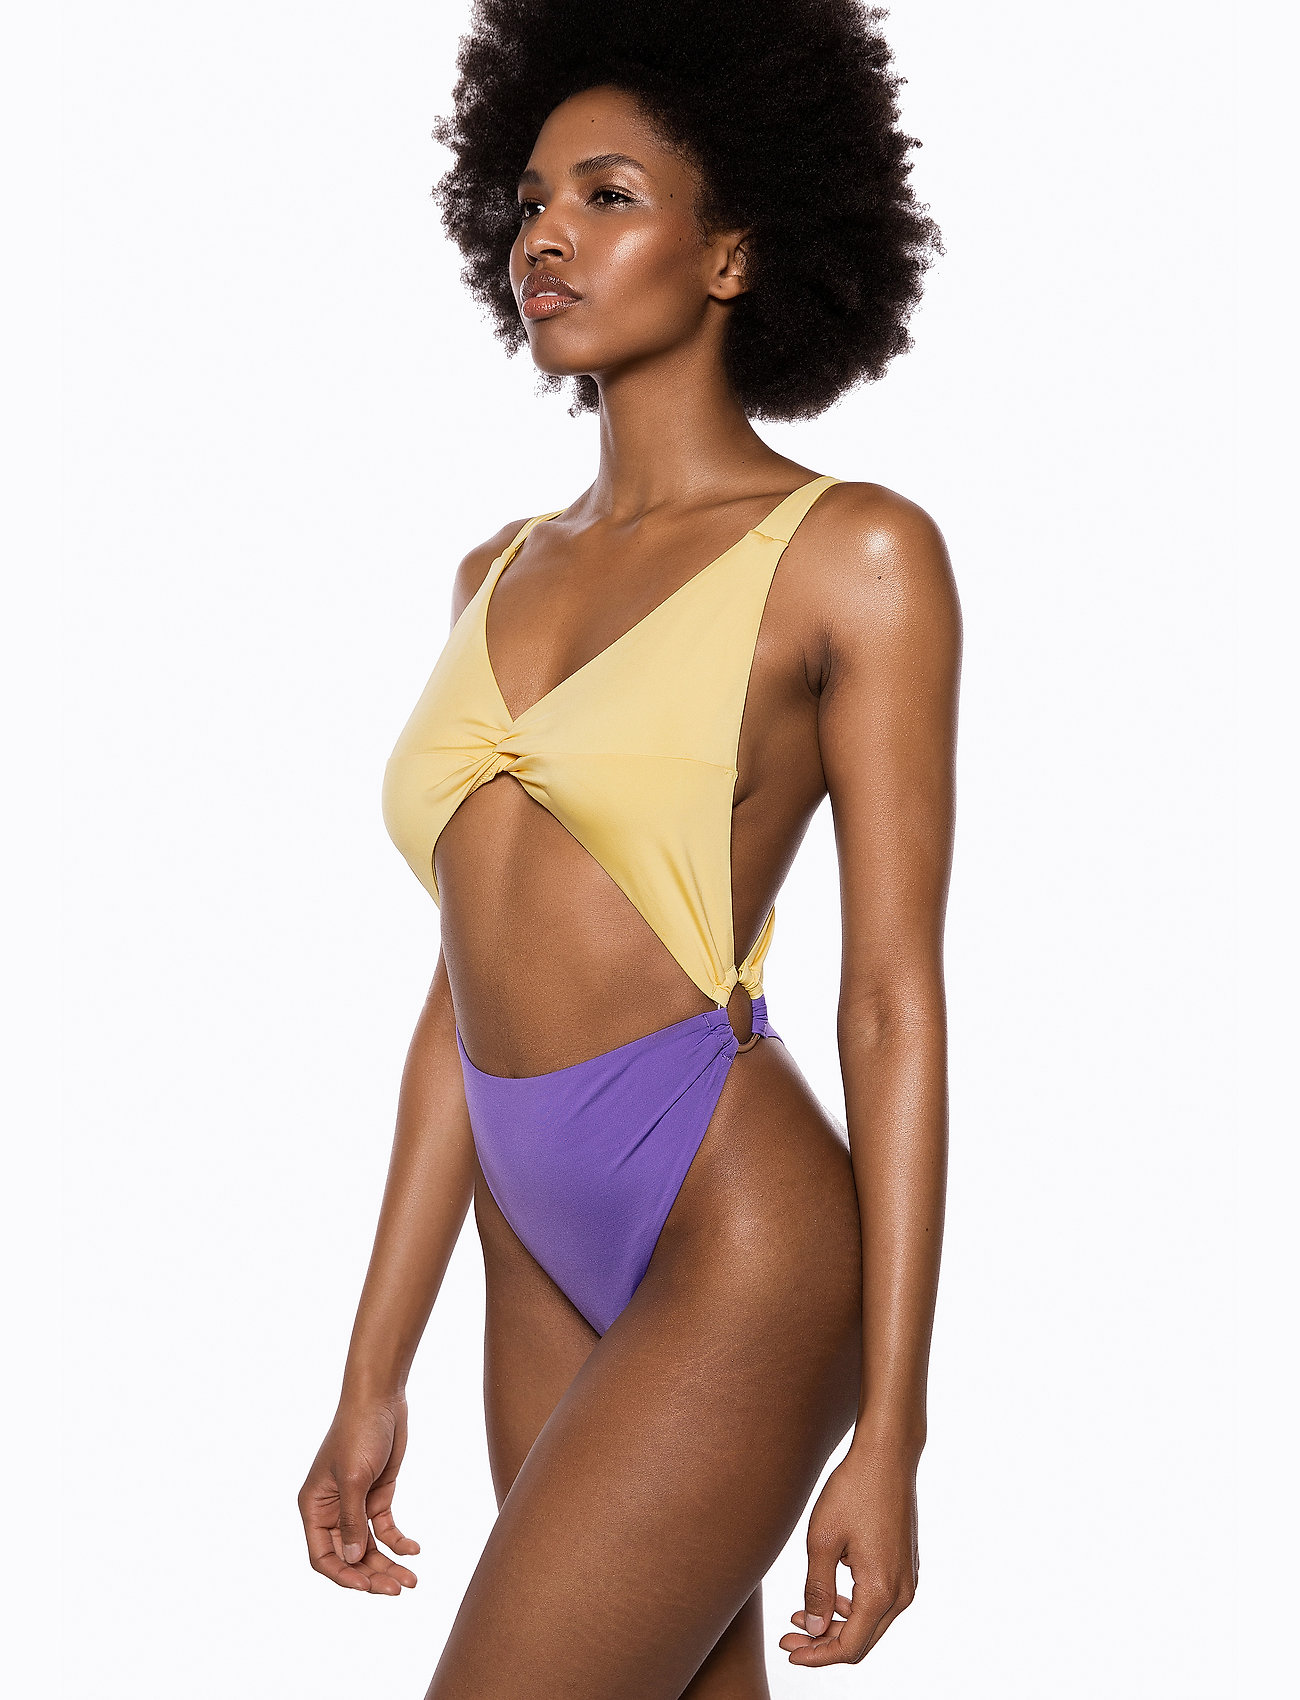 Front Swimsuityellow Swimsuityellow Front Twist purpleIvyrevel Twist Swimsuityellow Front purpleIvyrevel Front Twist purpleIvyrevel Twist bv67gyYf